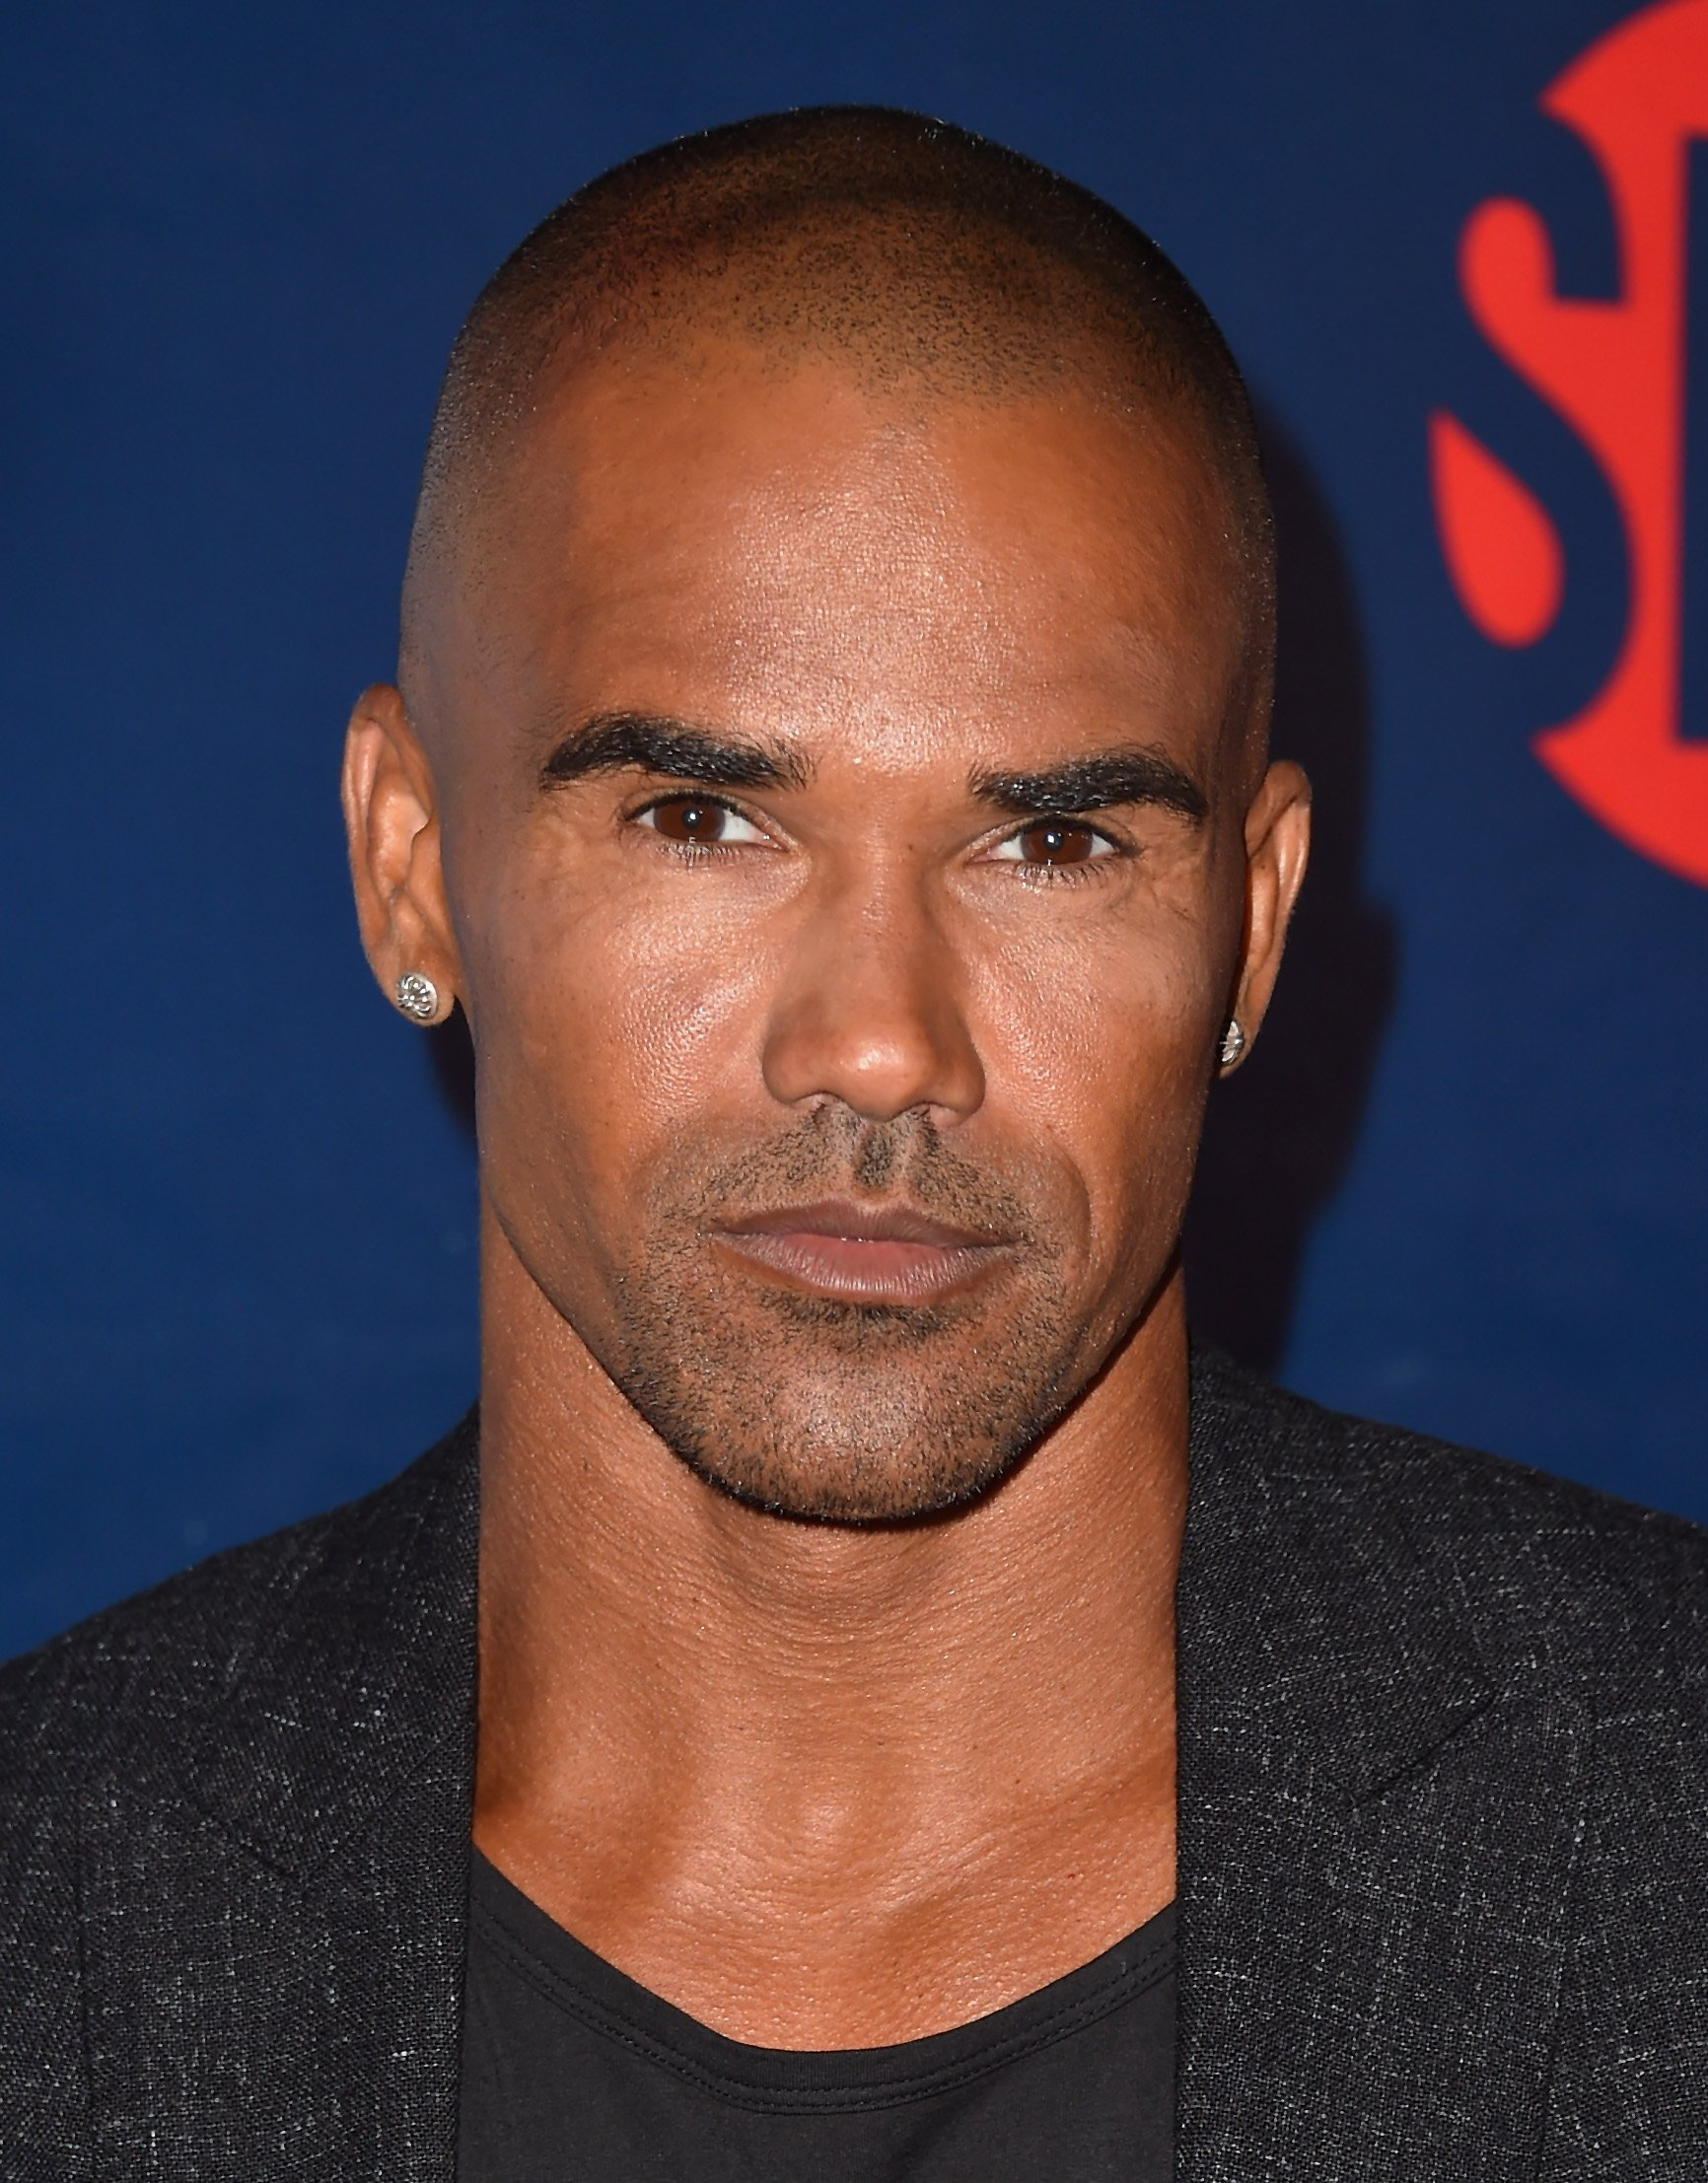 Shemar Moore attends CBS' 2015 Summer TCA party at the Pacific Design Center on August 10, 2015 in West Hollywood, California. | Source: Getty Images